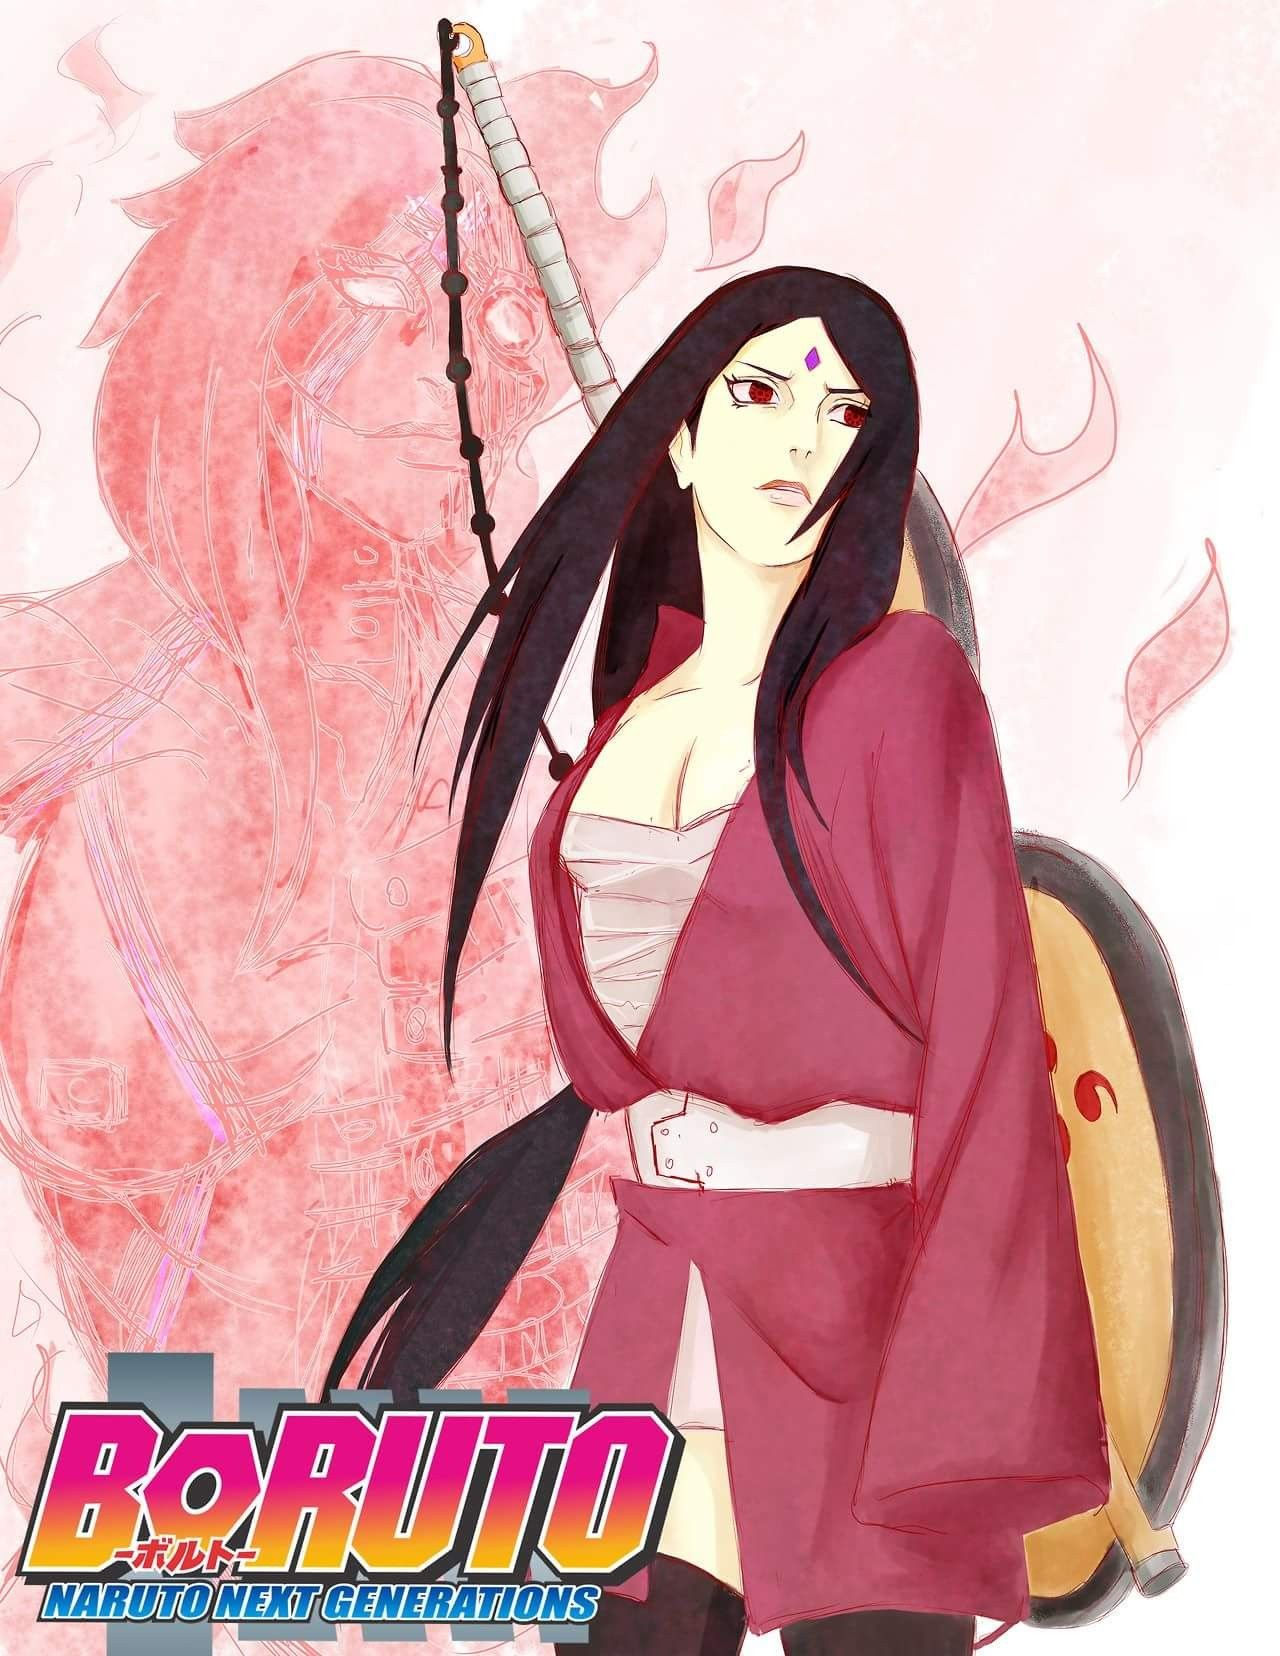 Adult sarada naruto the next generation - Adult manga 2 ...